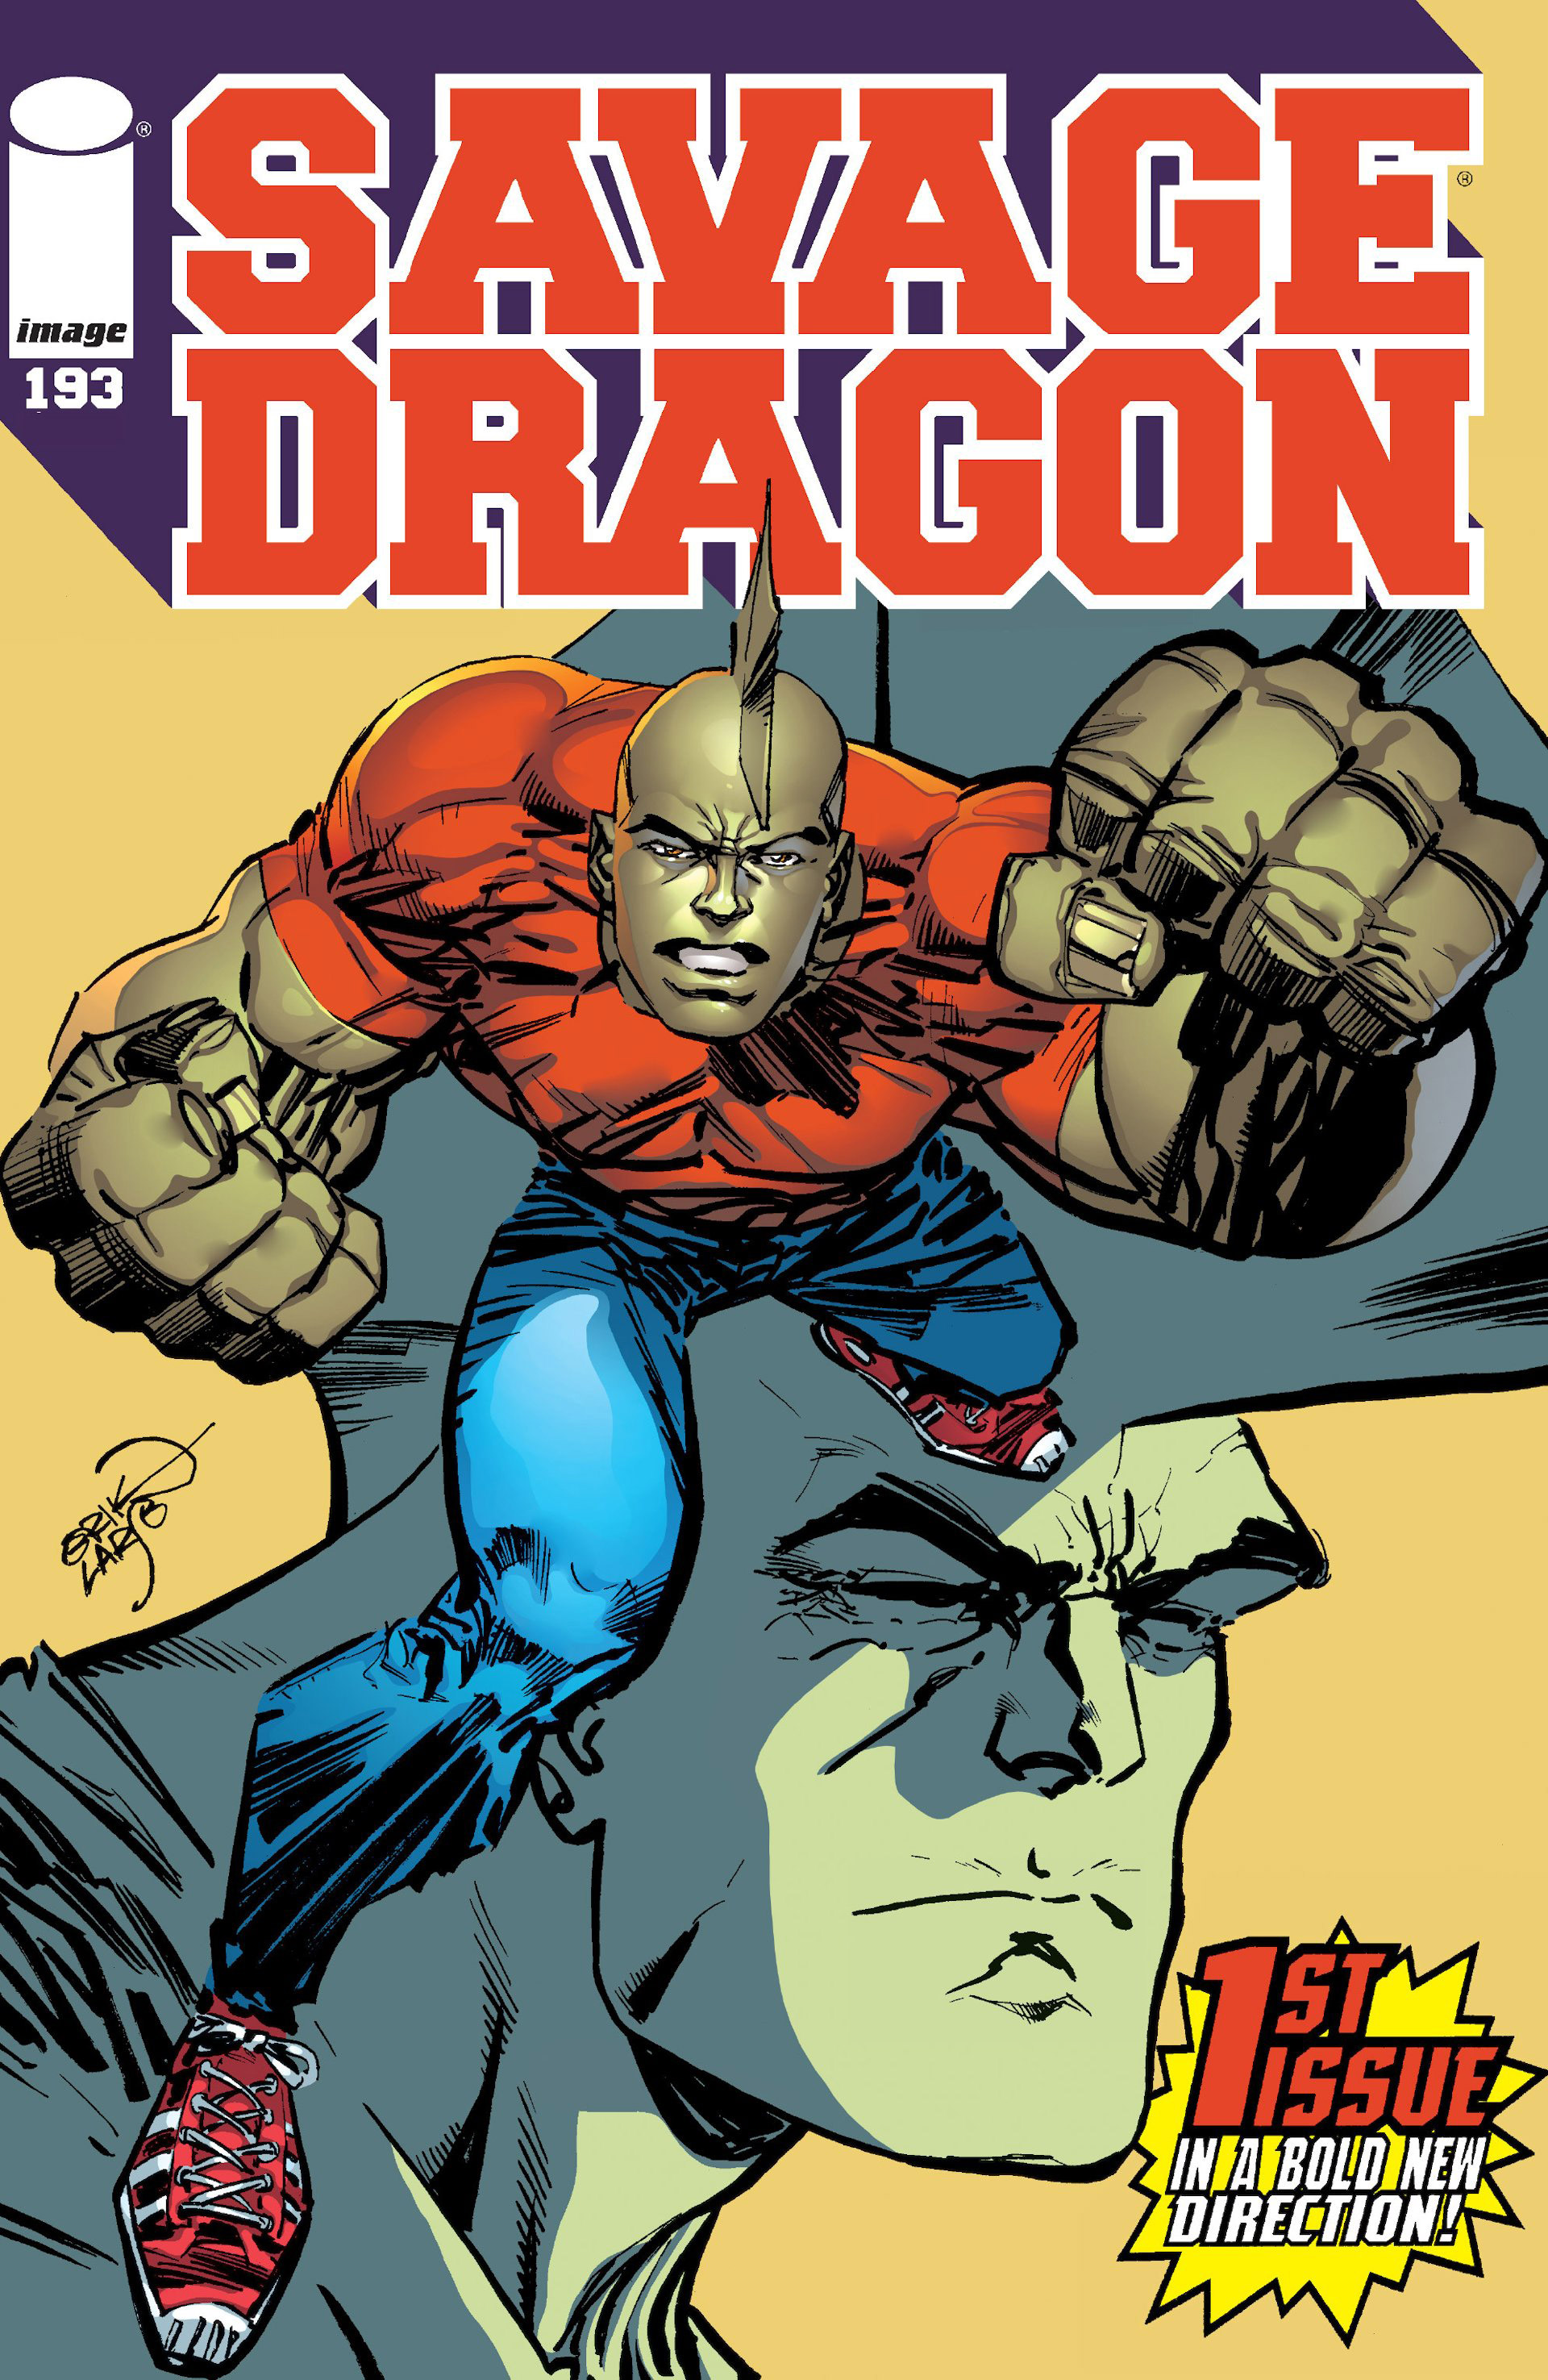 Cover Savage Dragon Vol.2 #193